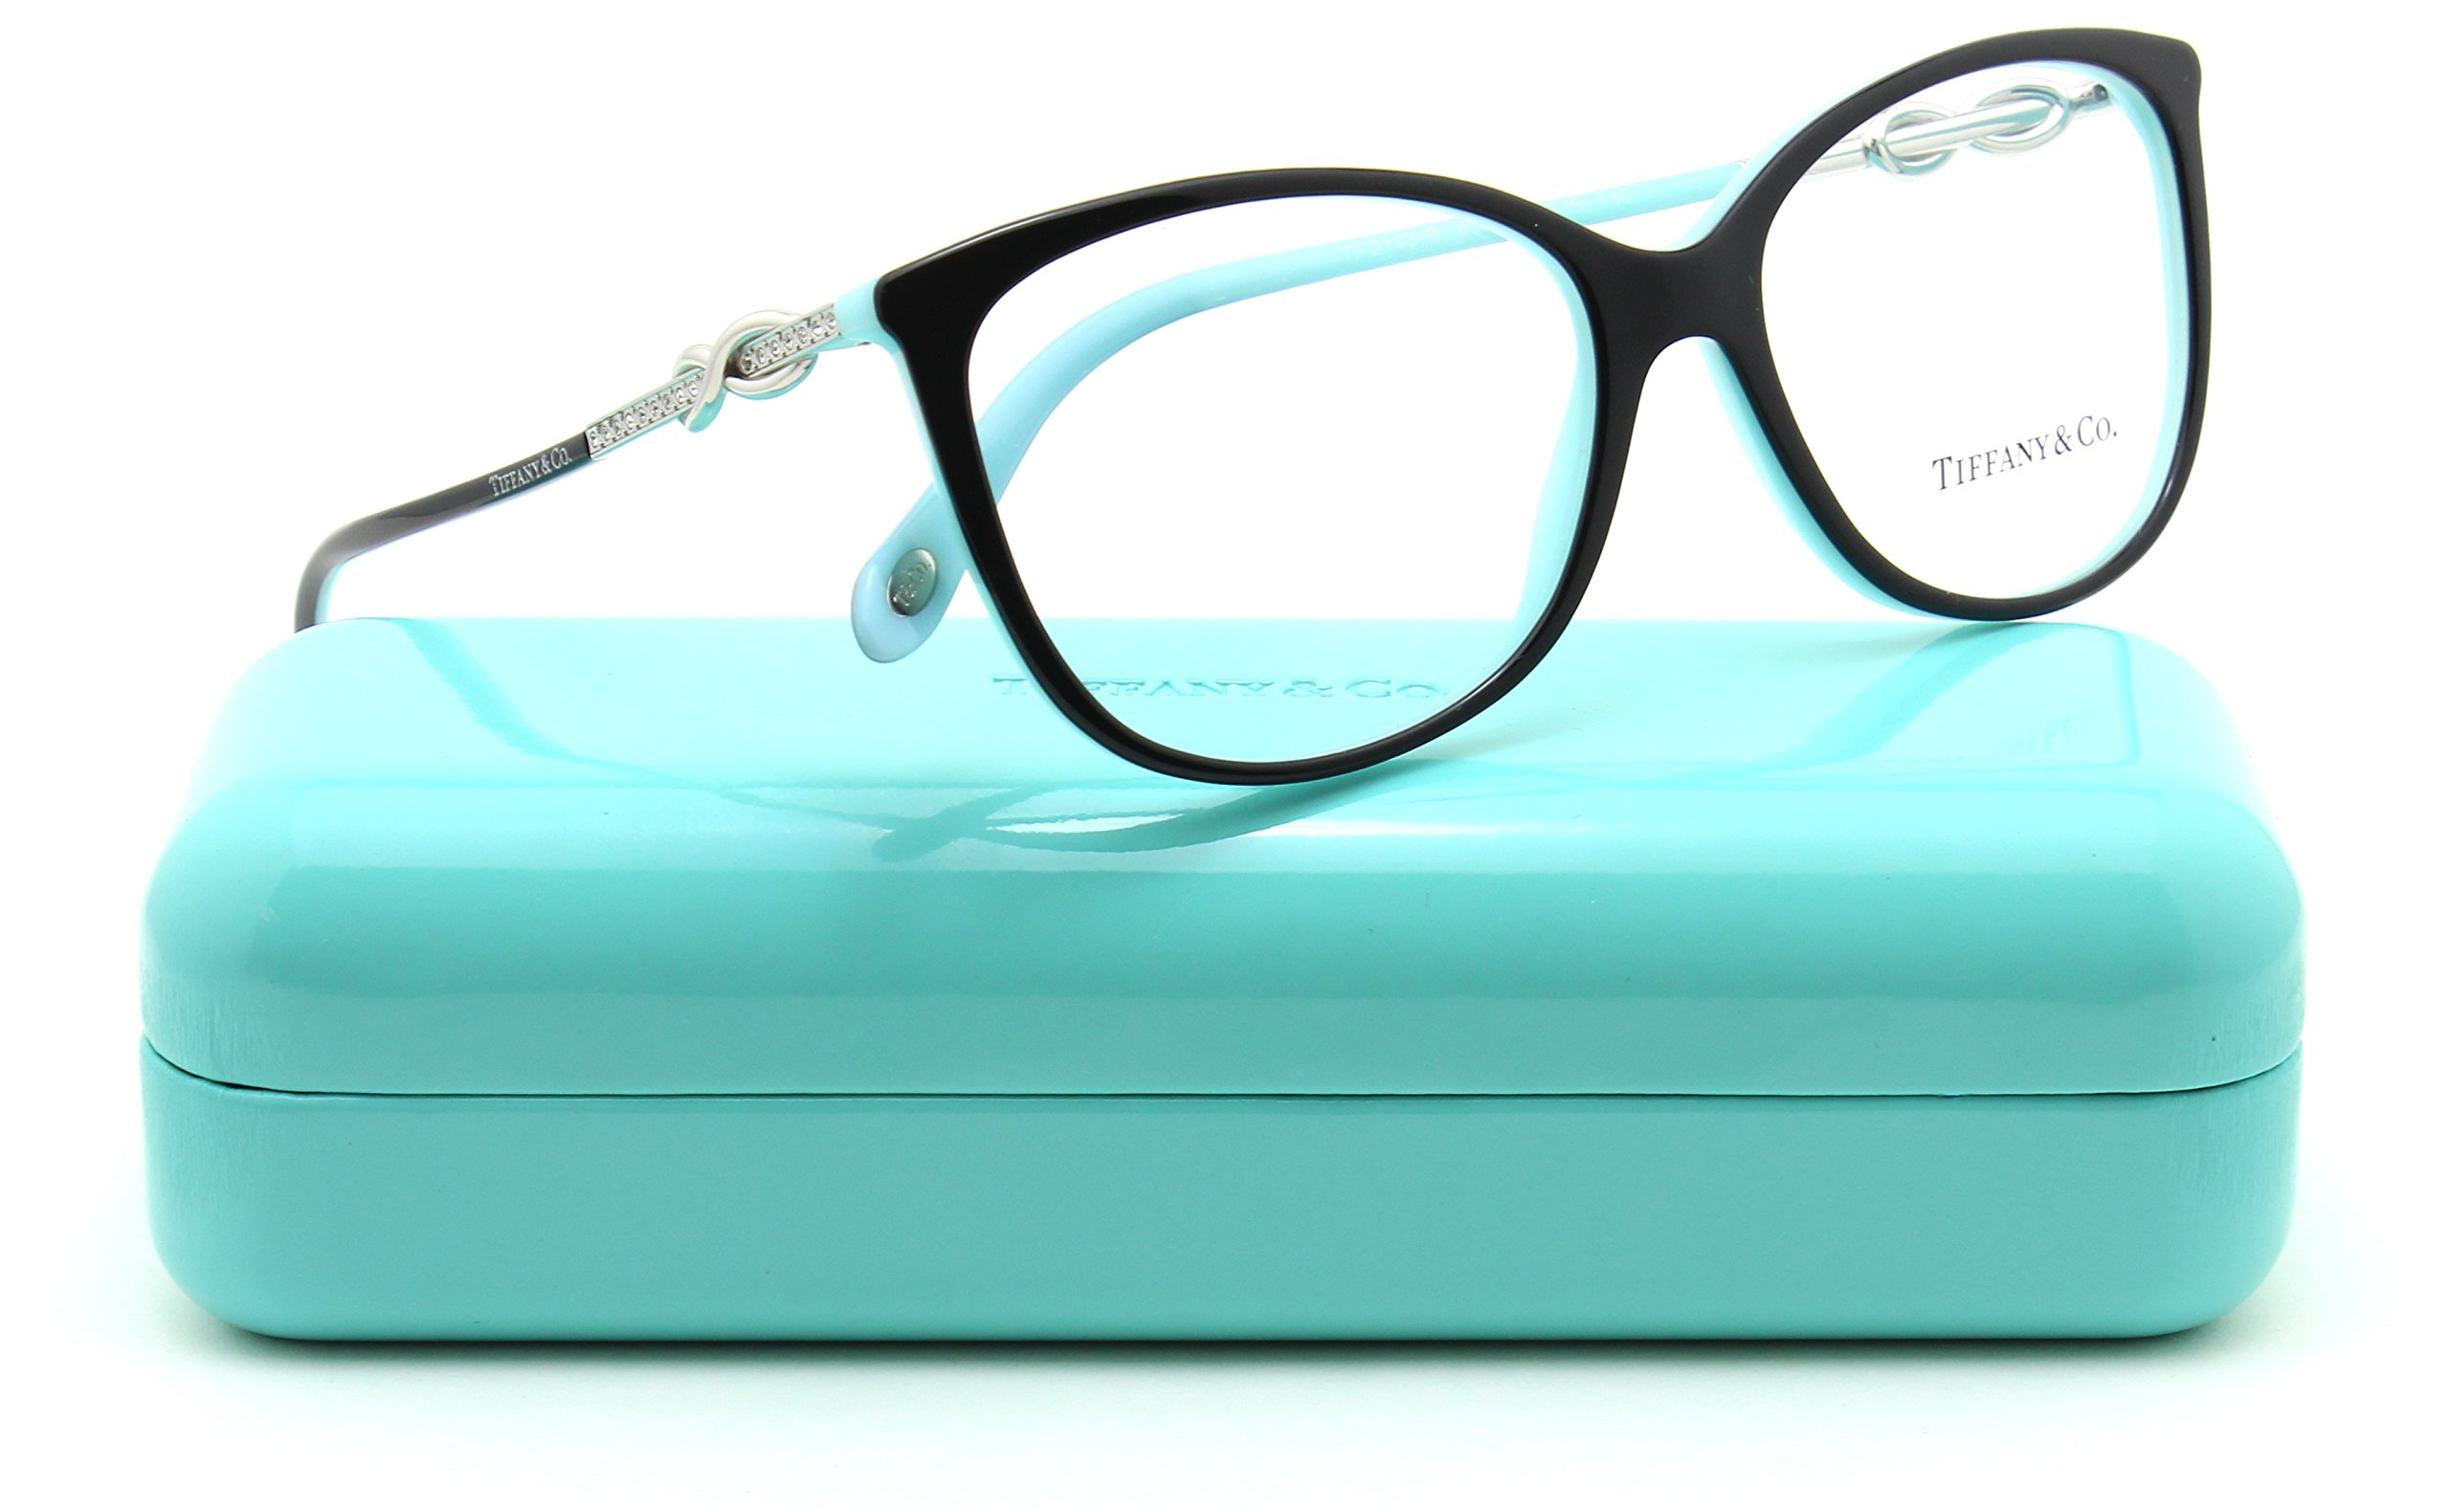 Tiffany & Co. TF 2143-BF Women Oval Eyeglasses RX - able Asian Fit 8055, 55mm